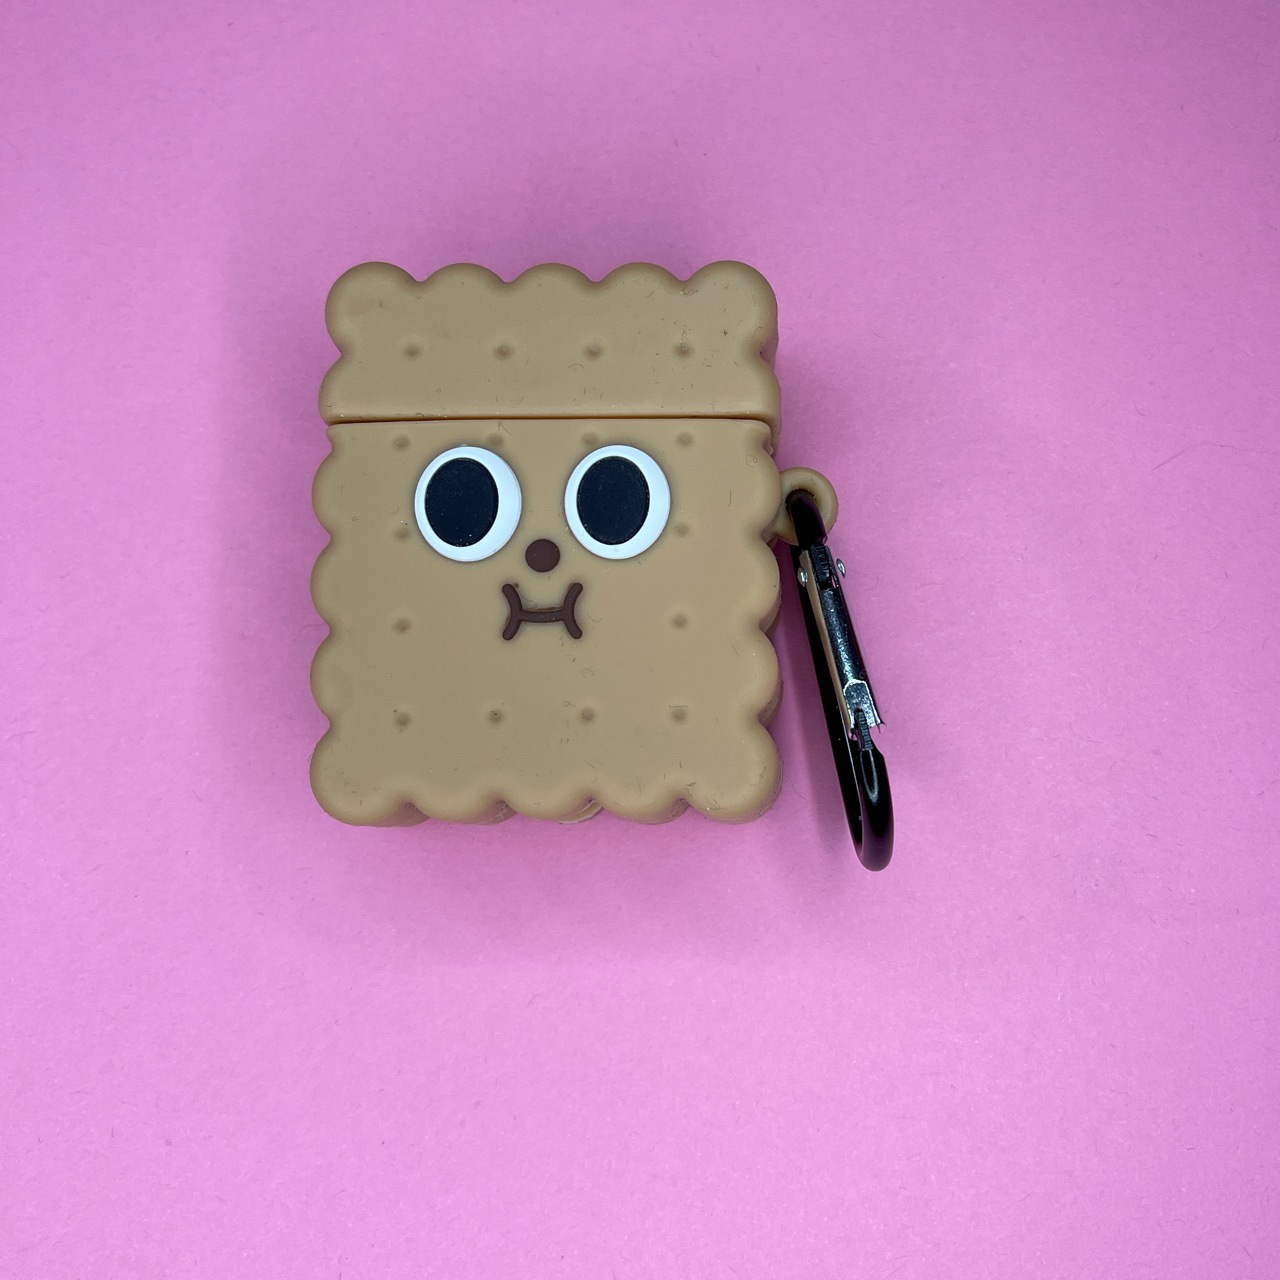 Product Image 1 - graham cracker airpod case!⭐️  •very cute